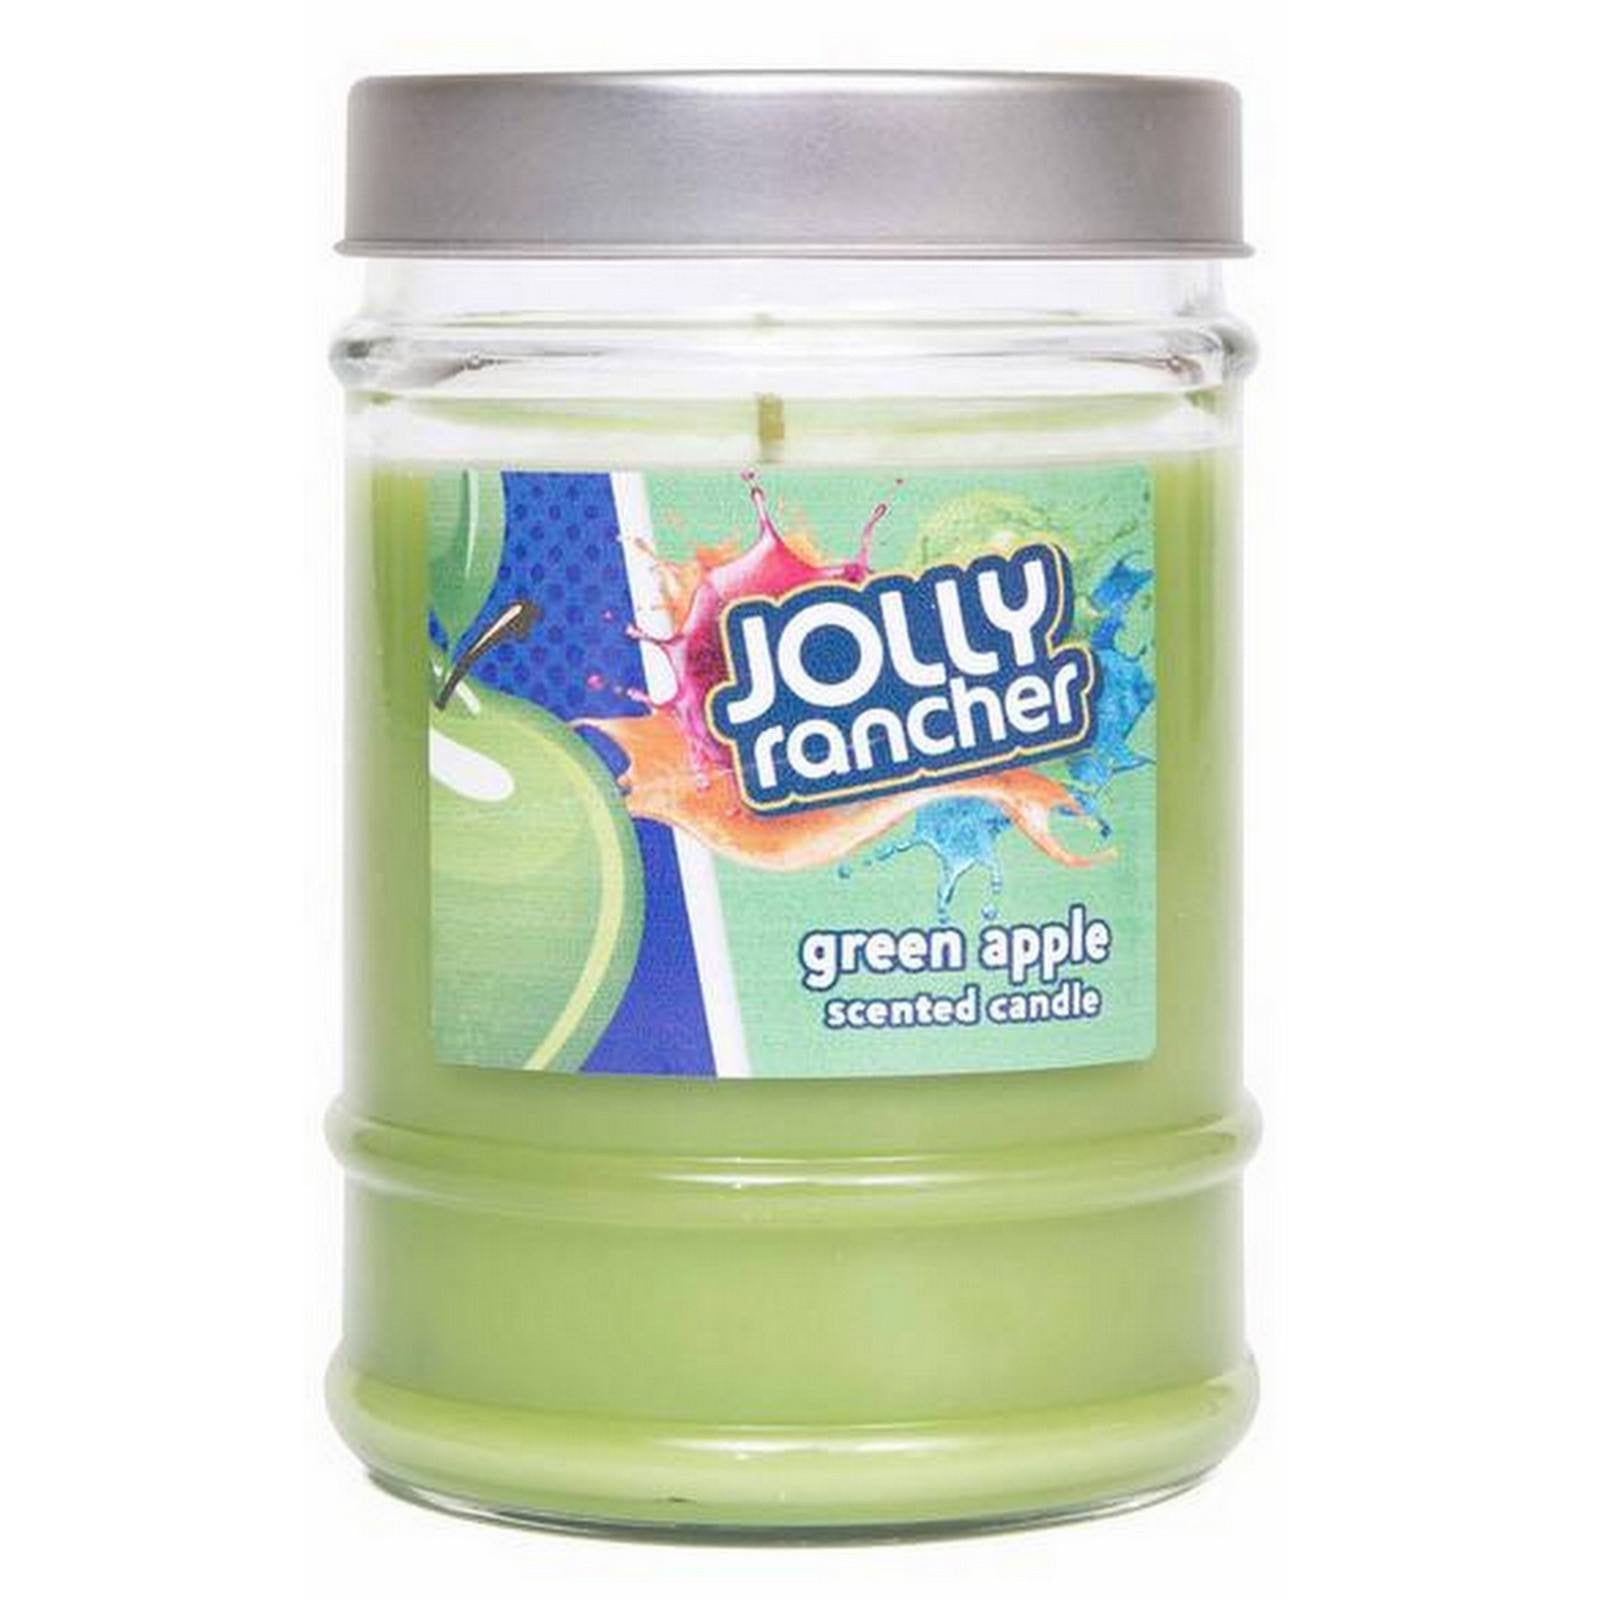 Jolly Rancher Green Apple Scented Canister Jar Candle Candles Candlemart.com $ 5.99